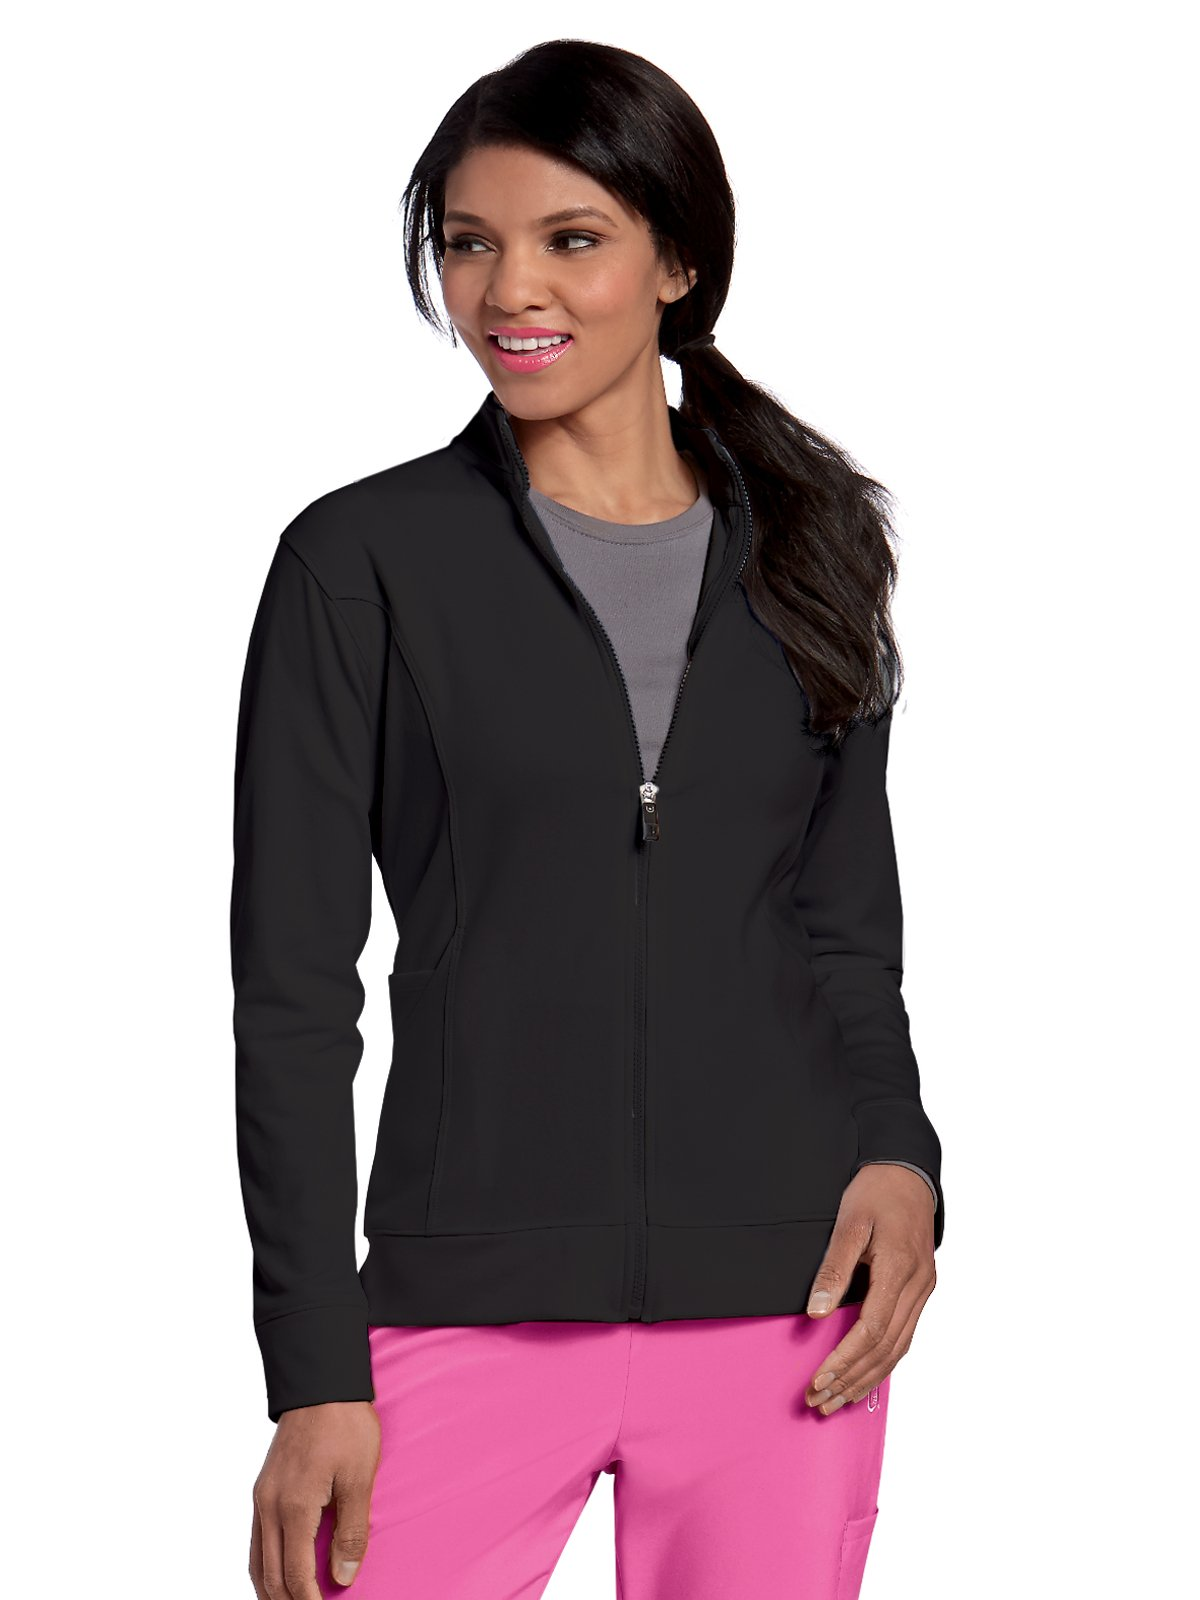 Landau Urbane Performance 9872 Women's Empower P-Tech Warm-up Scrub Jacket Black L by Landau